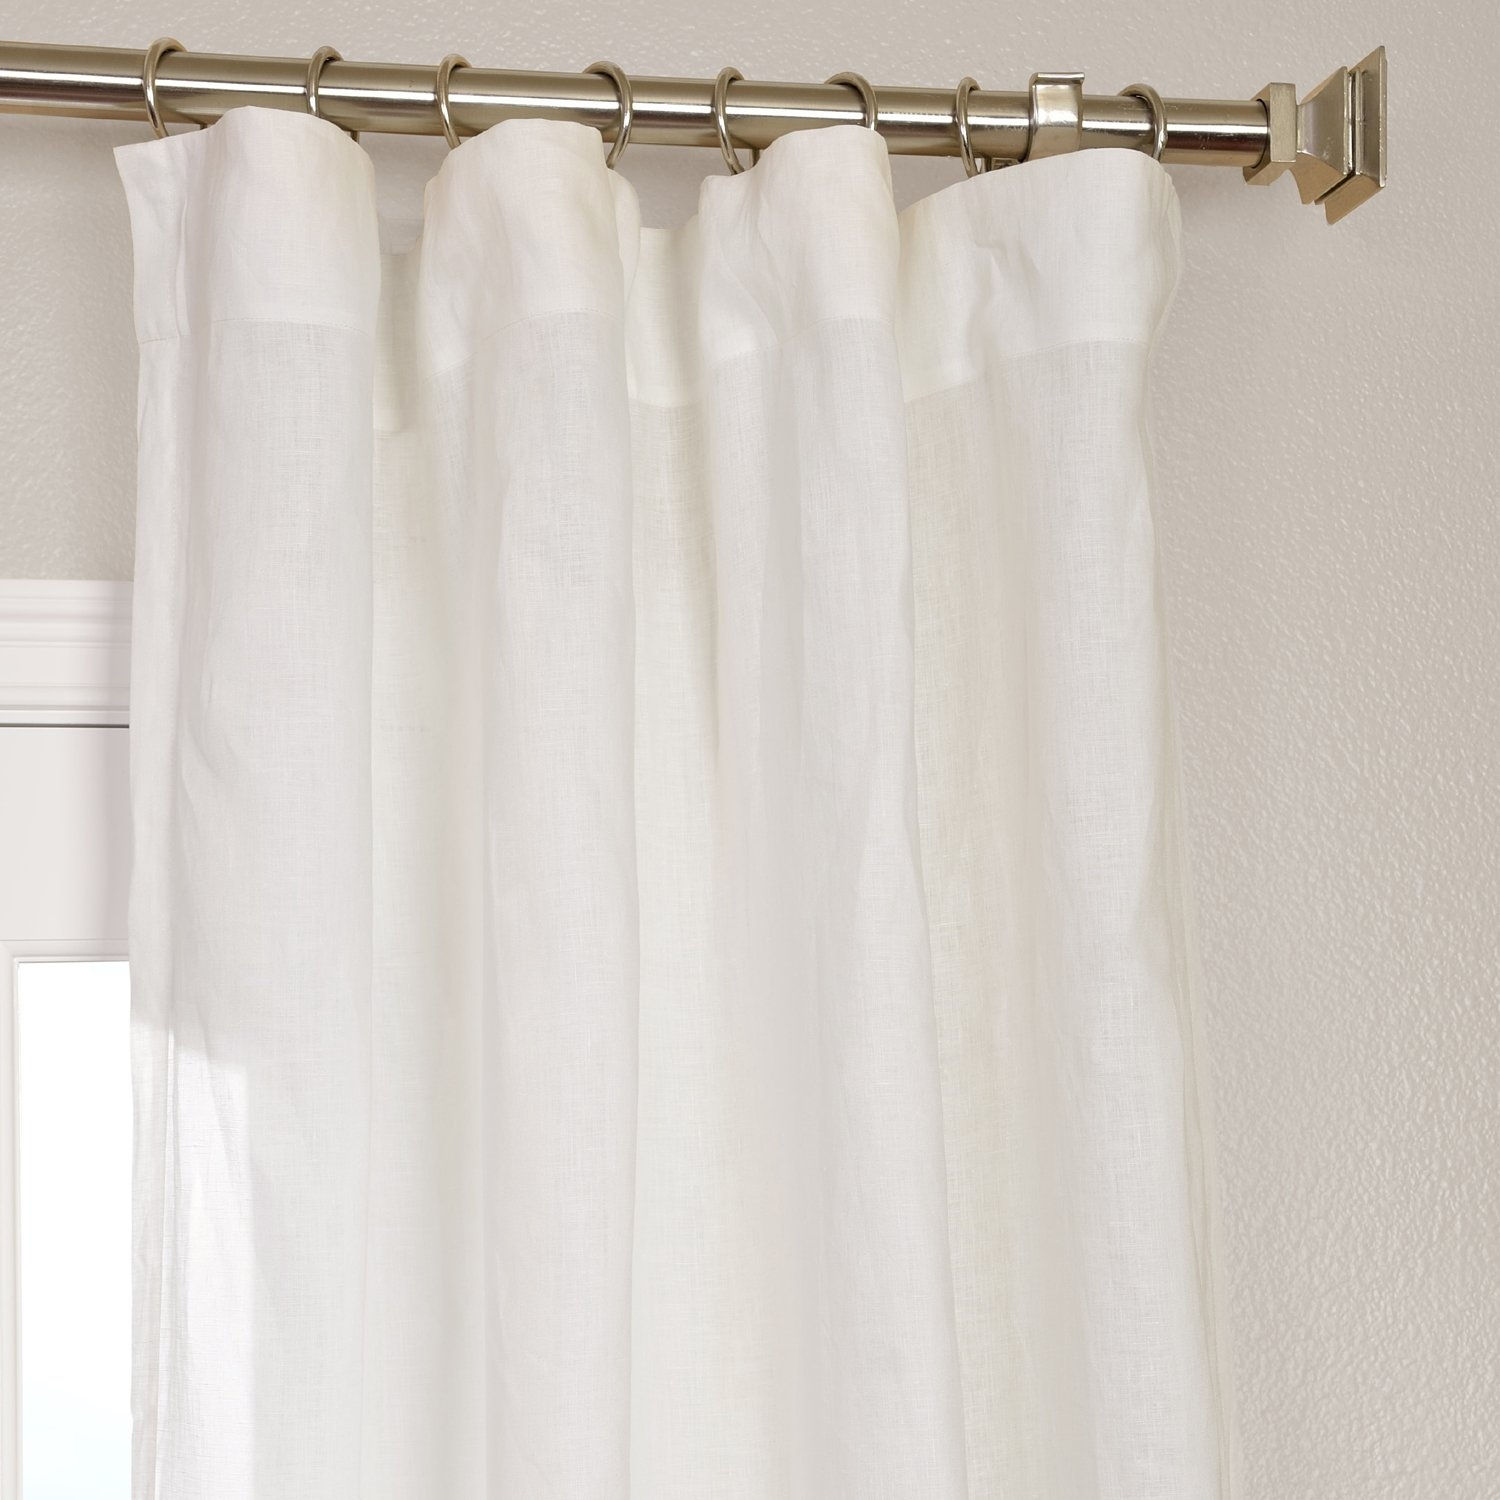 Half Price Drapes Signature Solid Sheer Rod Pocket Single Curtain Pertaining To Linen Gauze Curtains (View 15 of 15)